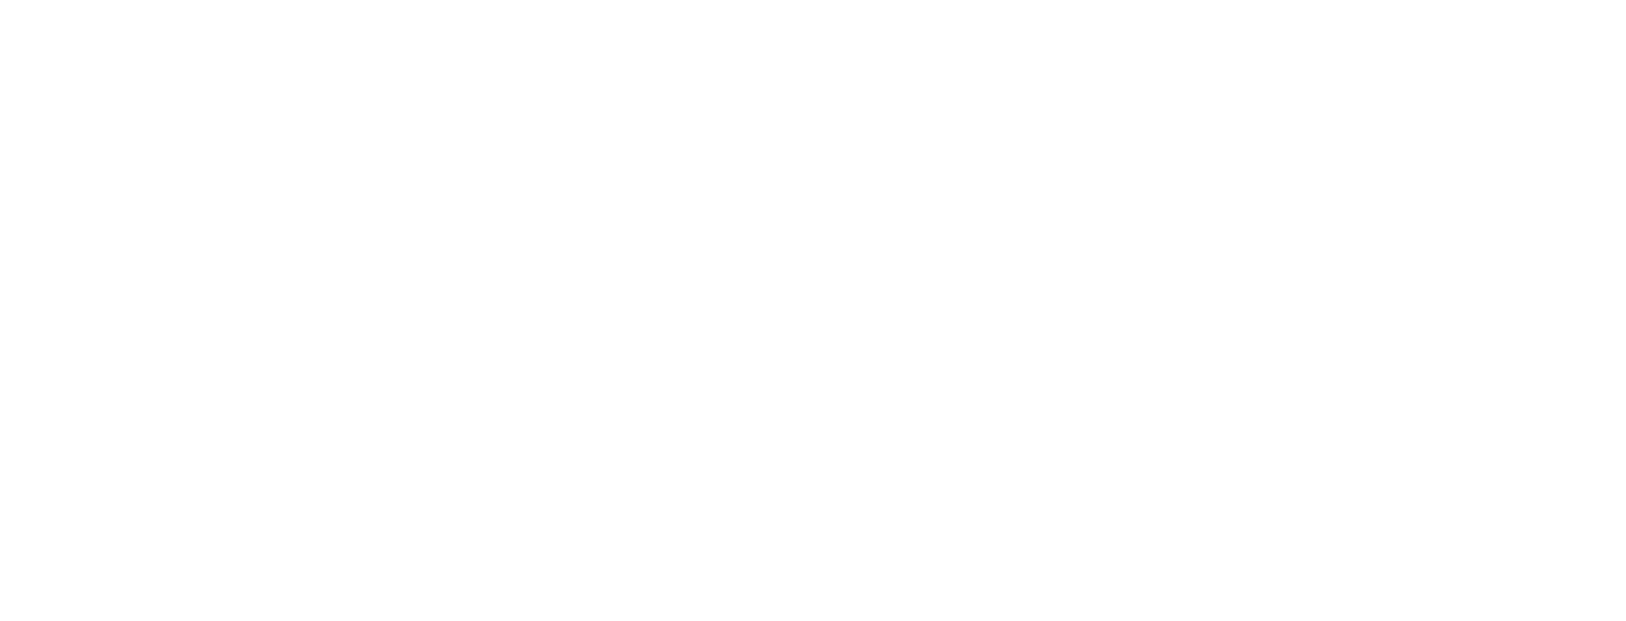 Central Illinois_stacked white.png